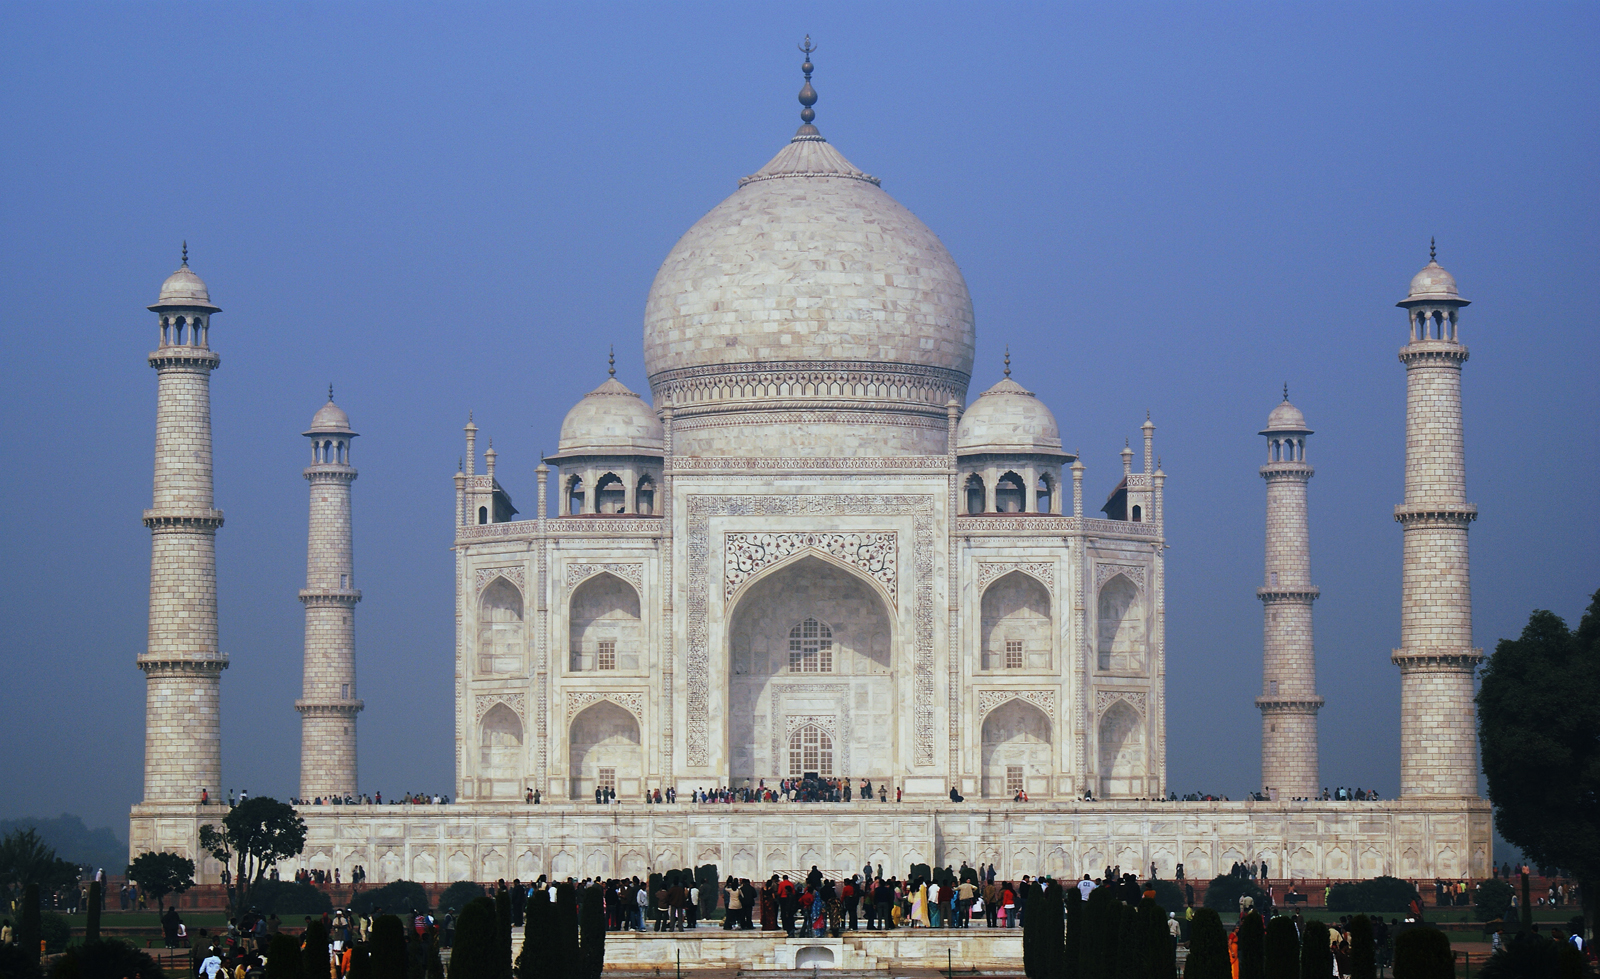 Taj mahal historical facts and pictures the history hub Indian building photos